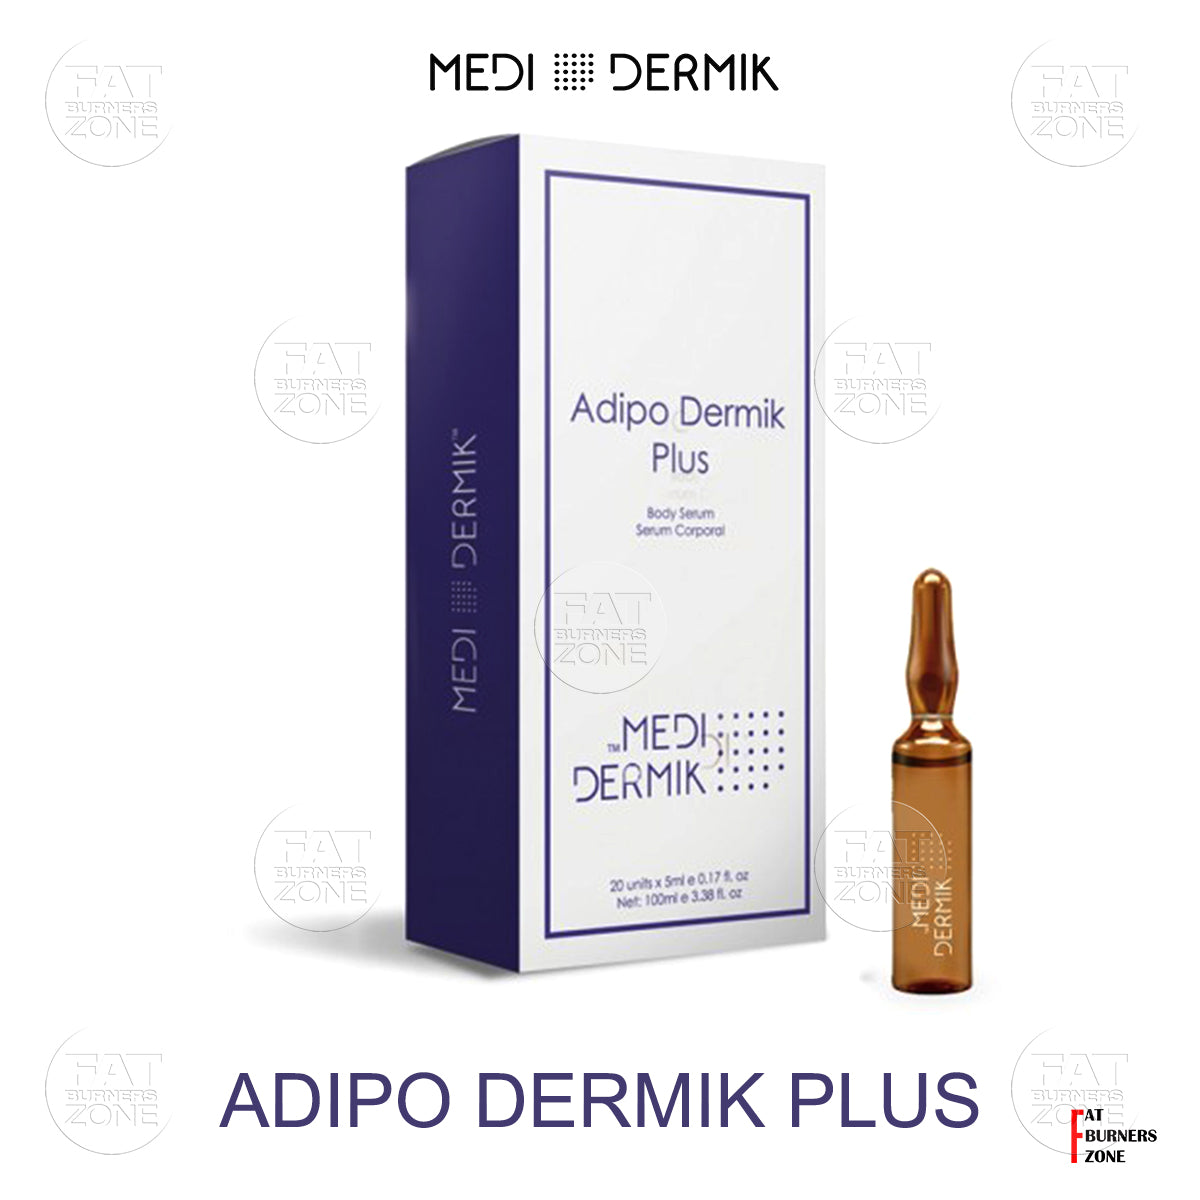 Adipo Dermik Plus 100ml Phospatidylcholine - L-Carnitine By Medidermik